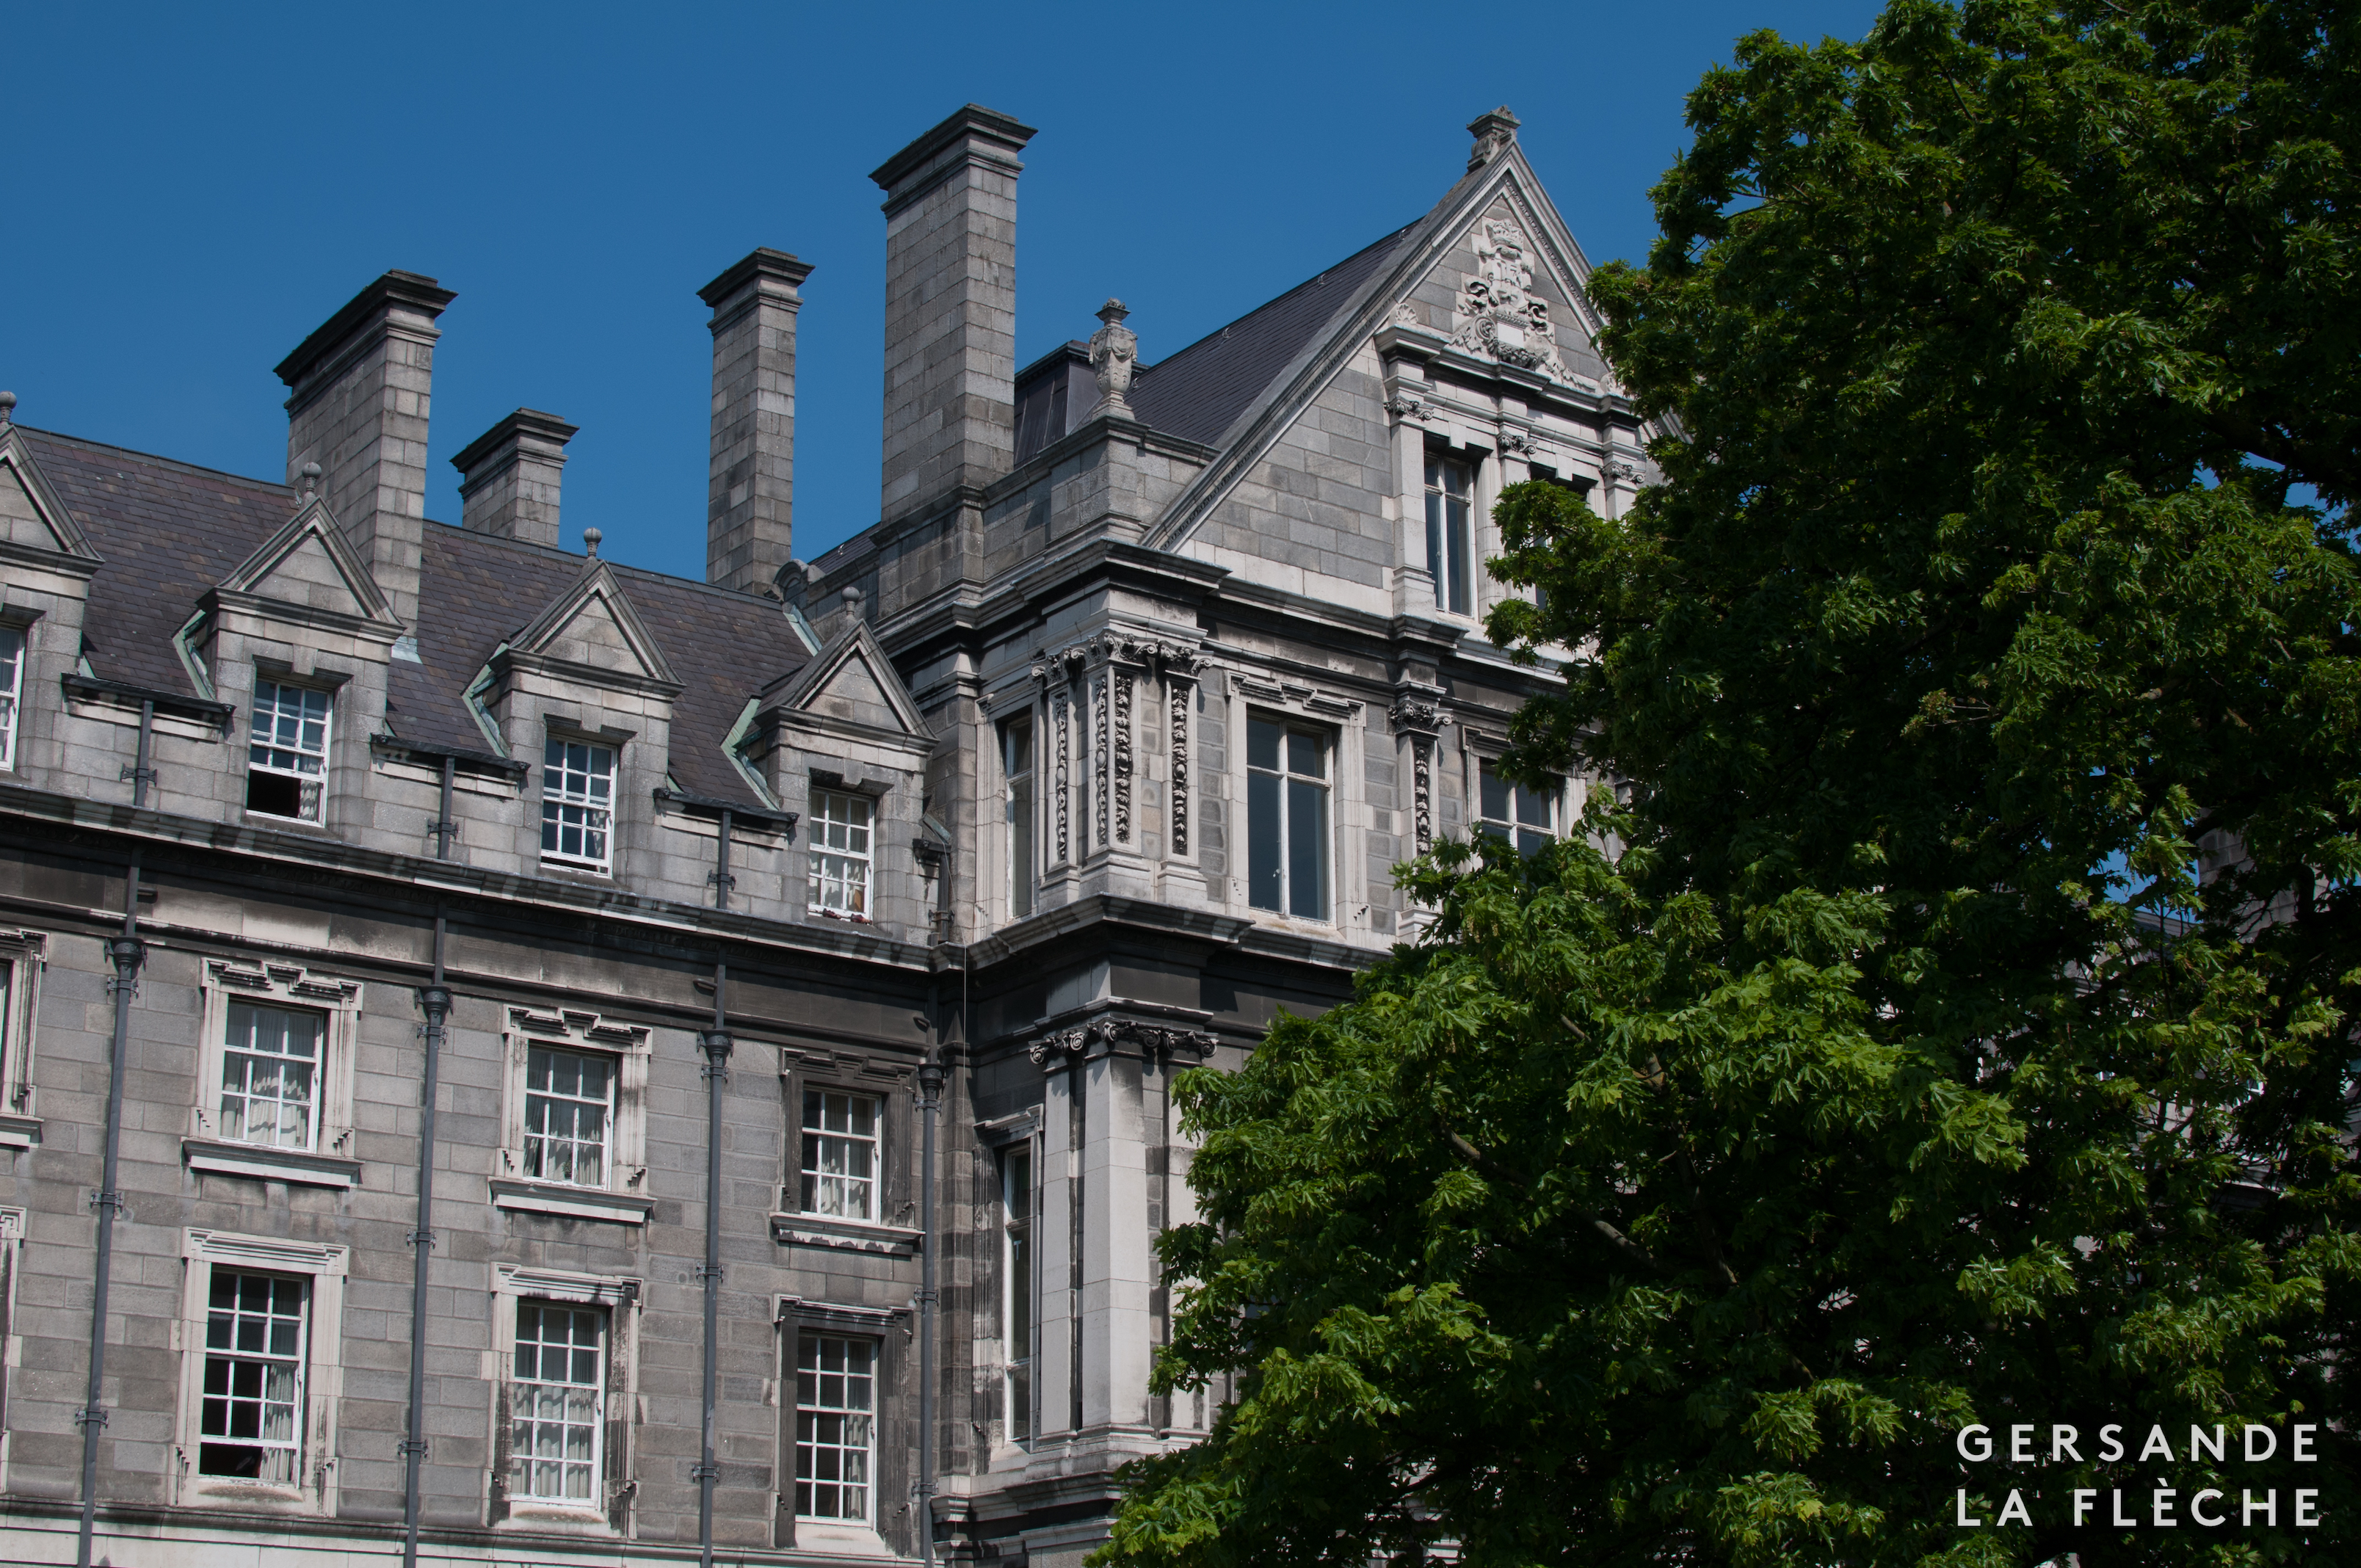 Photo by the author featuring a building facade from Trinity College Dublin.